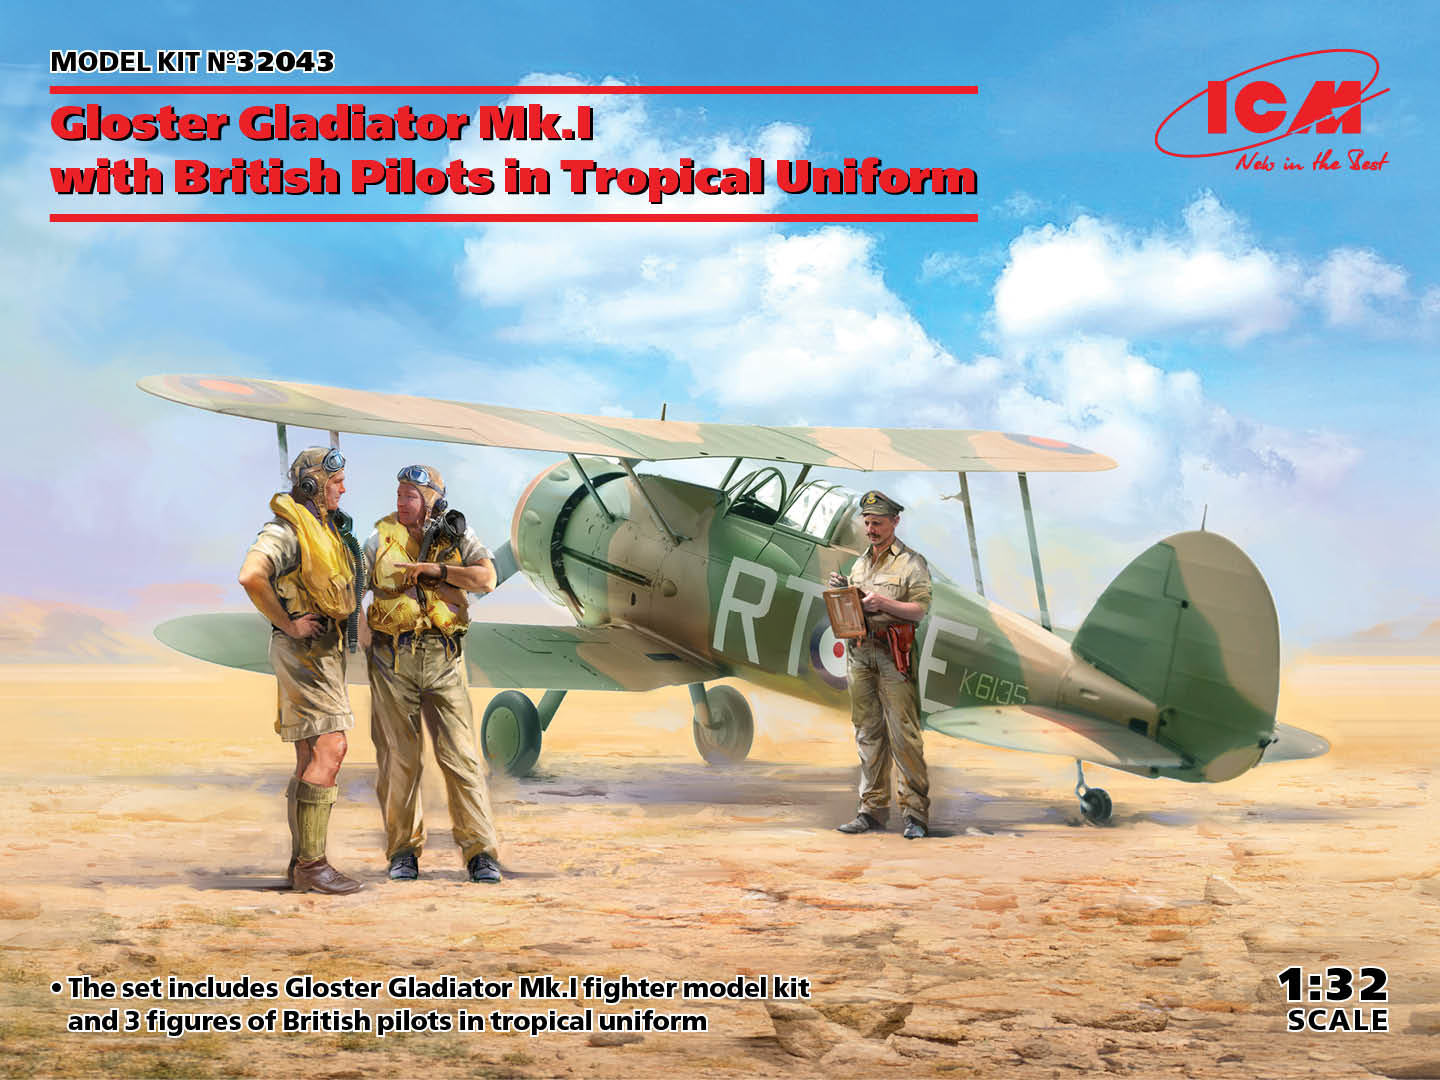 Gloster Gladiator Mk.I with British Pilots in Tropical Uniform